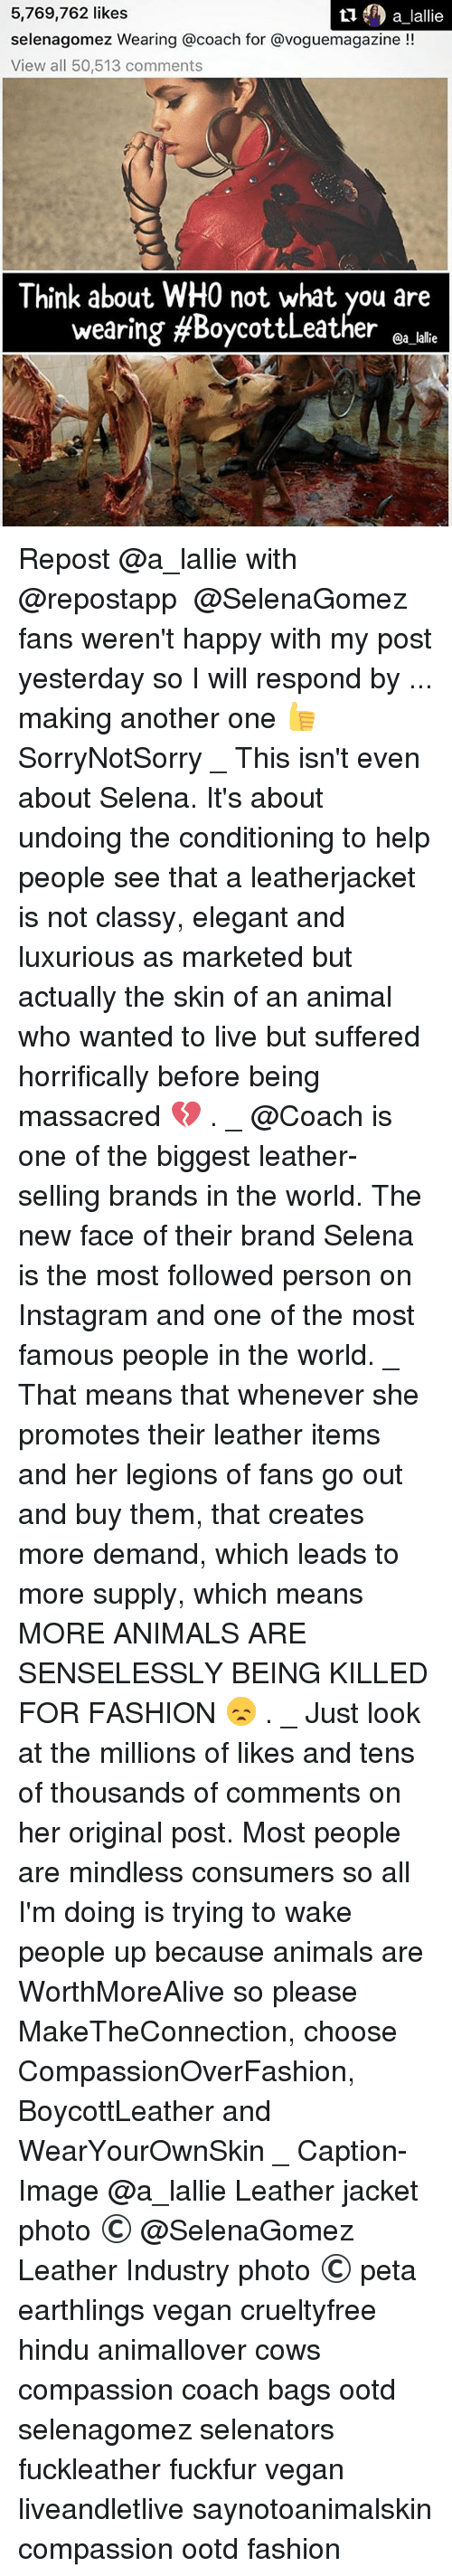 coach bags: 5,769,762 likes  selenageomez Wearing a coach for avoguemagazine  View all 50,513 comments  Think about WHO not what you are  wearing #Boycott Leather  @a lallie Repost @a_lallie with @repostapp ・・・ @SelenaGomez fans weren't happy with my post yesterday so I will respond by ... making another one 👍 SorryNotSorry _ This isn't even about Selena. It's about undoing the conditioning to help people see that a leatherjacket is not classy, elegant and luxurious as marketed but actually the skin of an animal who wanted to live but suffered horrifically before being massacred 💔 . _ @Coach is one of the biggest leather-selling brands in the world. The new face of their brand Selena is the most followed person on Instagram and one of the most famous people in the world. _ That means that whenever she promotes their leather items and her legions of fans go out and buy them, that creates more demand, which leads to more supply, which means MORE ANIMALS ARE SENSELESSLY BEING KILLED FOR FASHION 😞 . _ Just look at the millions of likes and tens of thousands of comments on her original post. Most people are mindless consumers so all I'm doing is trying to wake people up because animals are WorthMoreAlive so please MakeTheConnection, choose CompassionOverFashion, BoycottLeather and WearYourOwnSkin _ Caption-Image @a_lallie Leather jacket photo © @SelenaGomez Leather Industry photo © peta earthlings vegan crueltyfree hindu animallover cows compassion coach bags ootd selenagomez selenators fuckleather fuckfur vegan liveandletlive saynotoanimalskin compassion ootd fashion